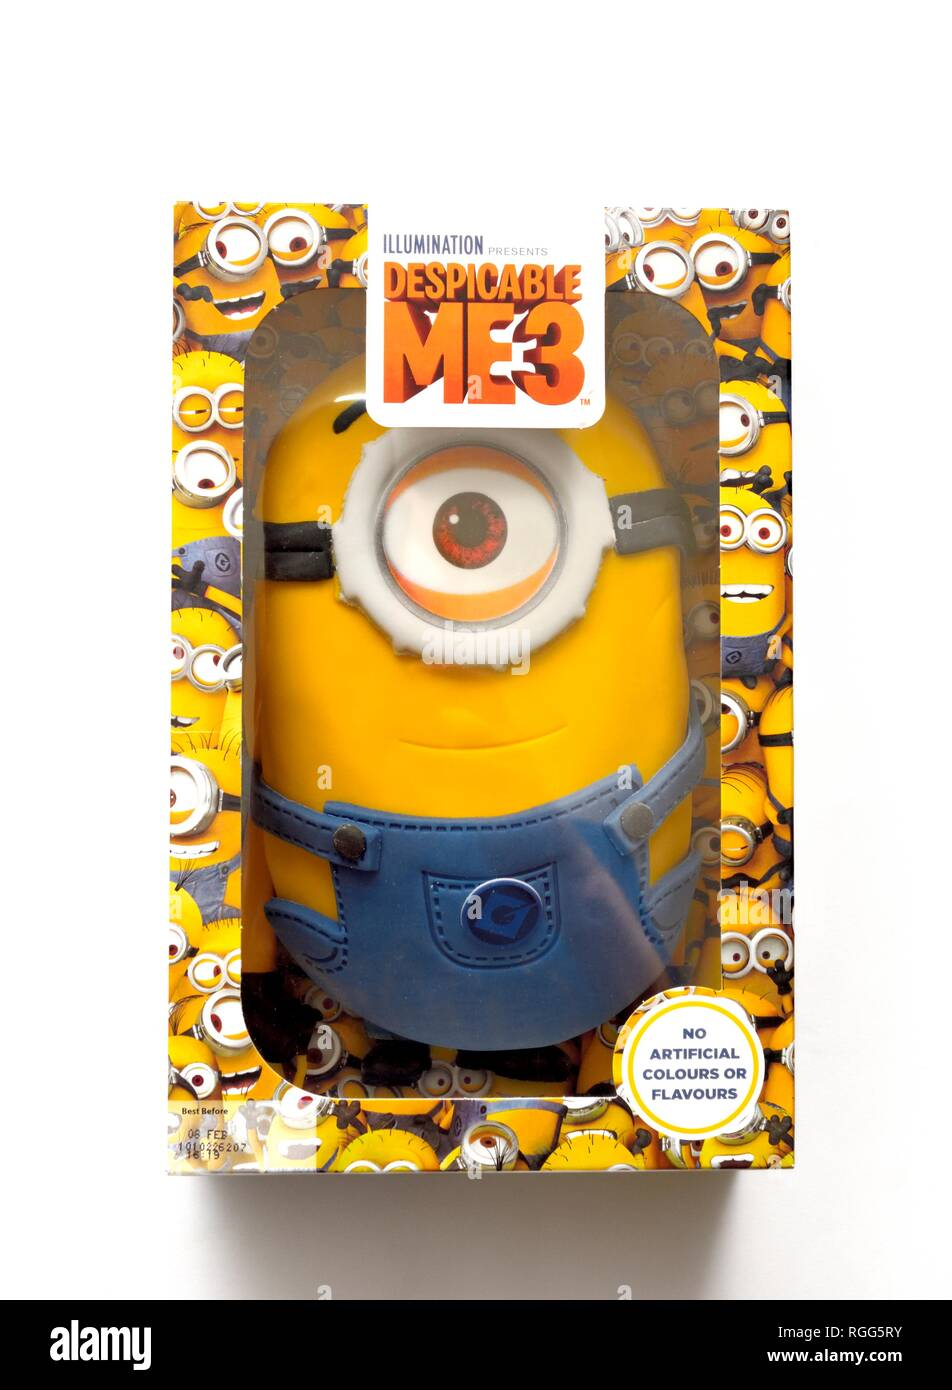 Fantastic Despicable Me 3 Birthday Cake Box Stock Photo 233925103 Alamy Funny Birthday Cards Online Inifofree Goldxyz